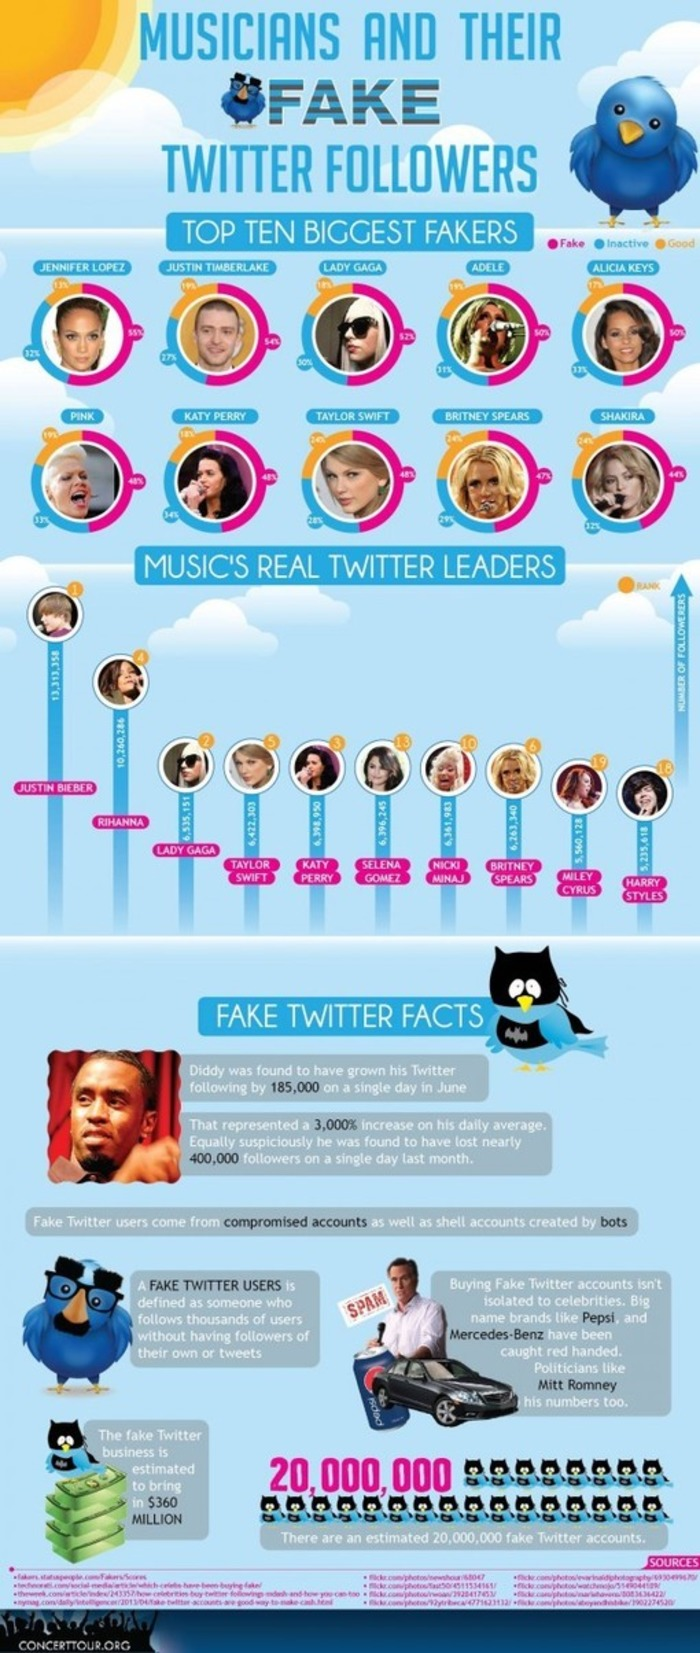 Top 10 Musicians With The Most Fake Twitter Followers [INFOGRAPHIC] - AllTwitter | Business in a Social Media World | Scoop.it